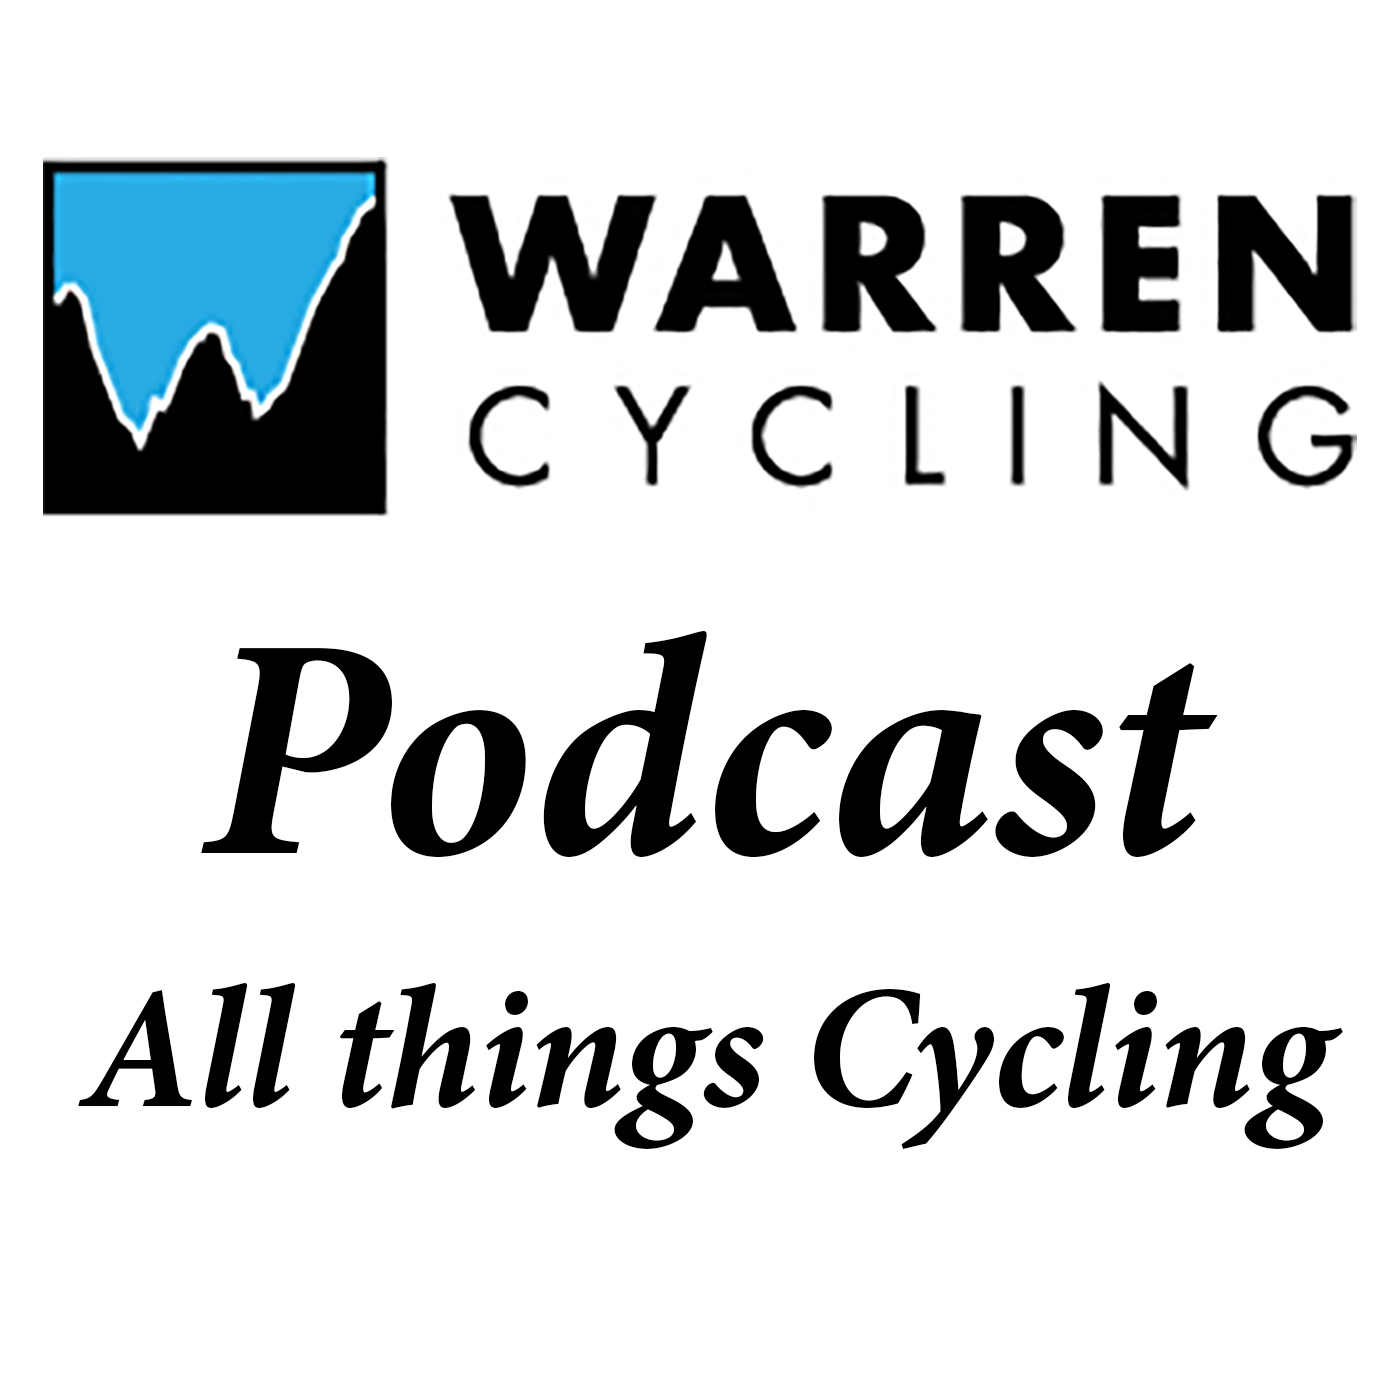 Warren Cycling Podcast Episode 243: Matteo Jorgenson Interview  show art